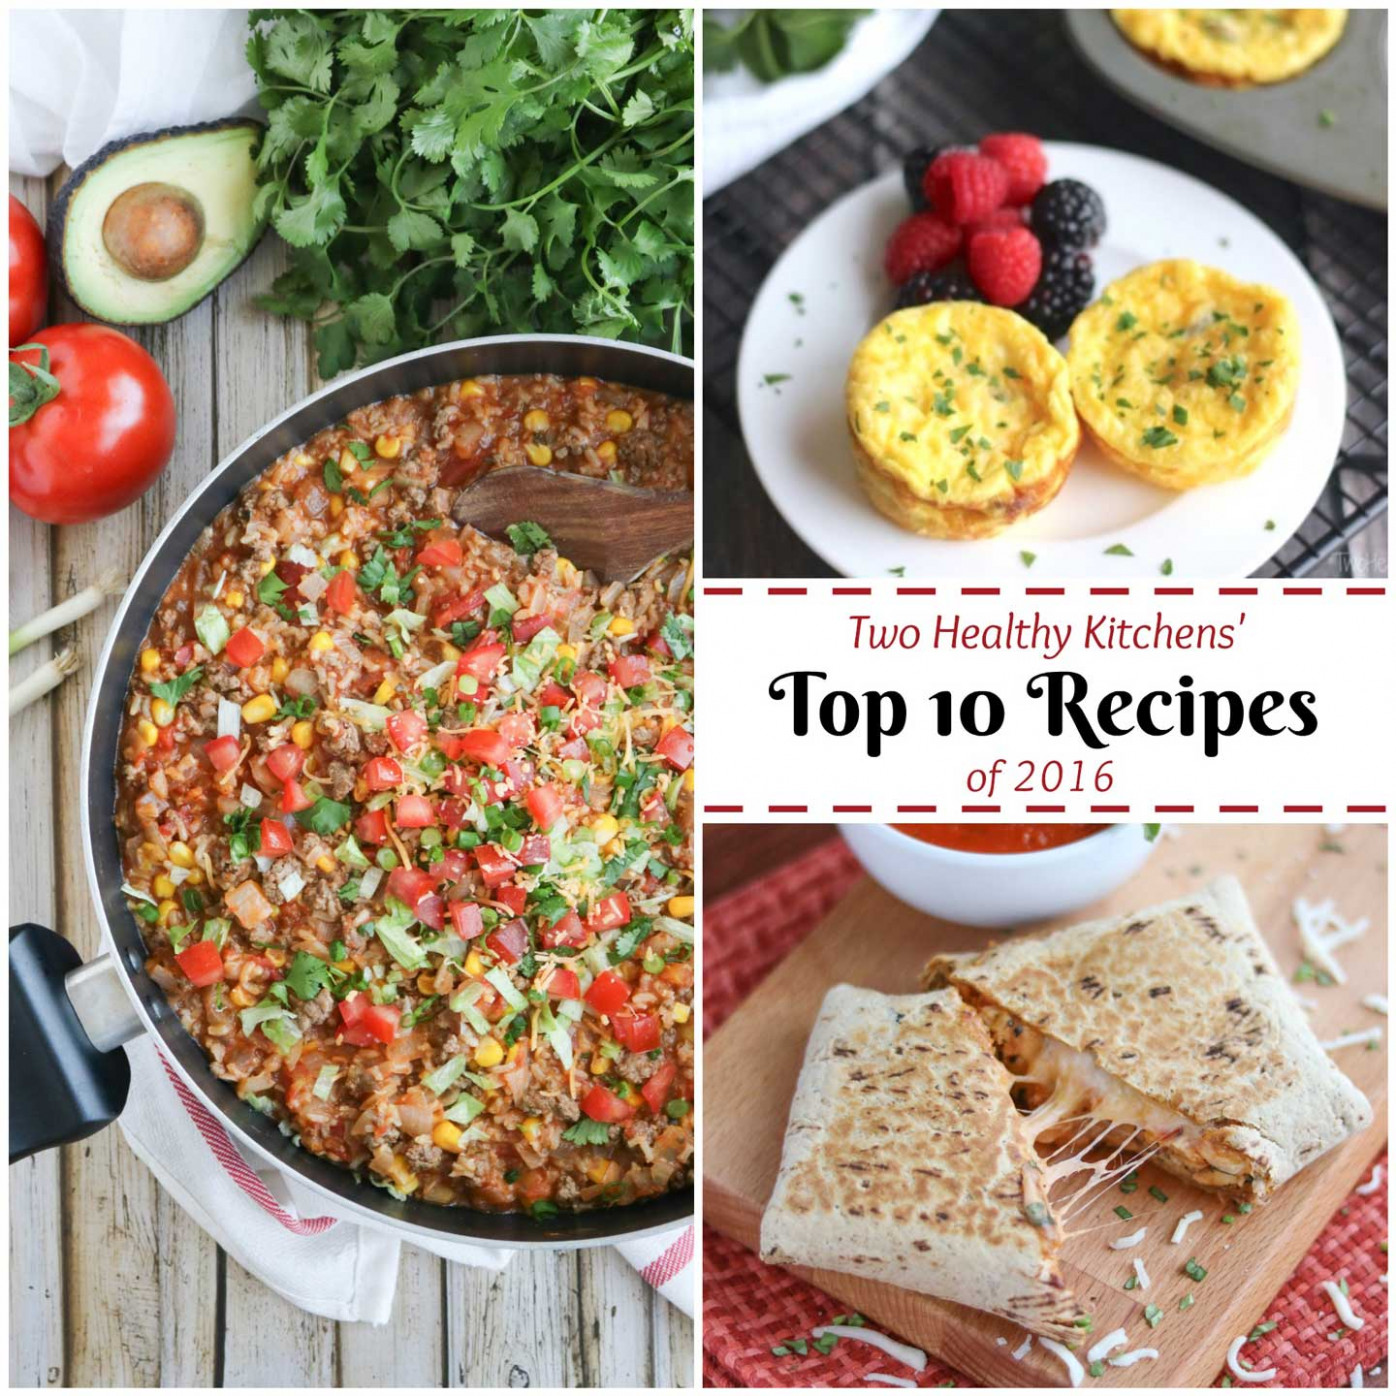 Our Most Popular Easy, Healthy Recipes of 2016 - Two ..